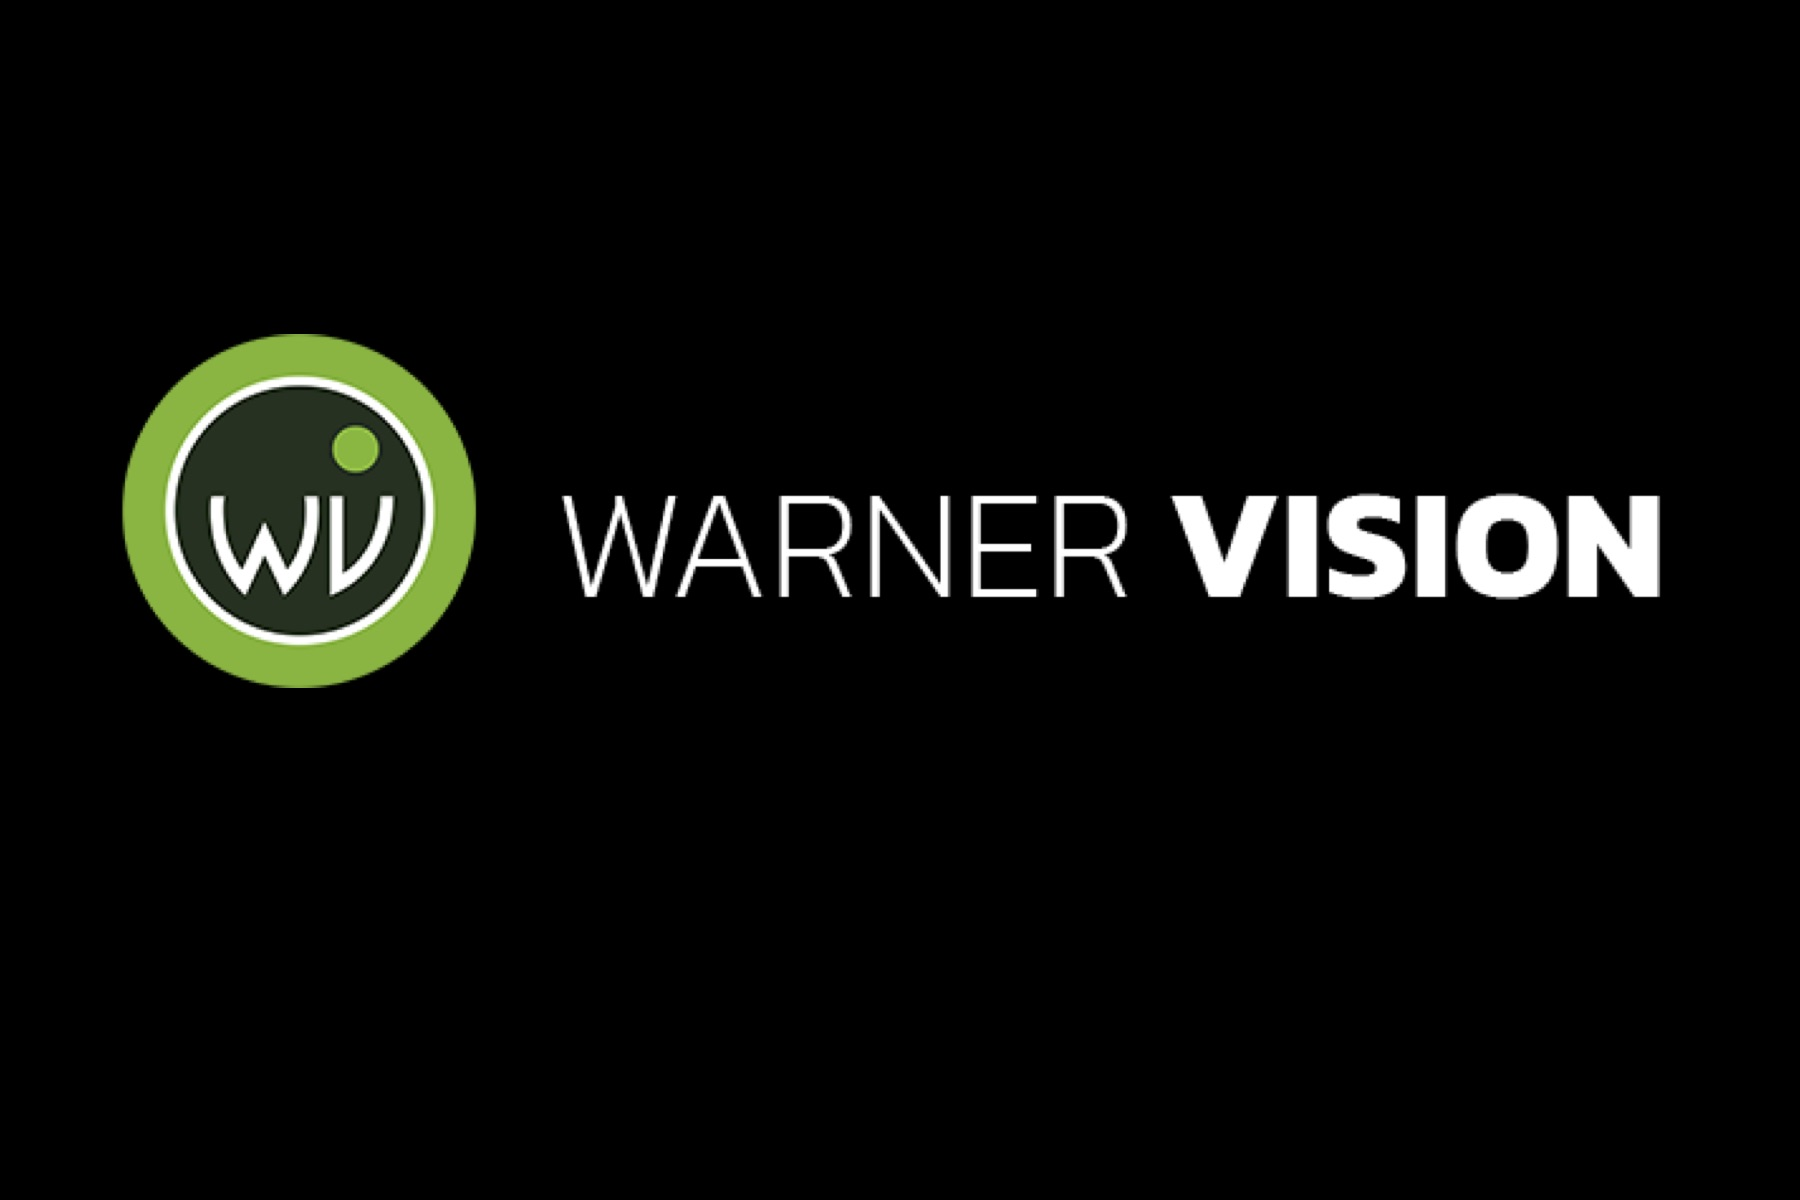 Warner Vision - a video production who Bullet has partnered with on a number of films.